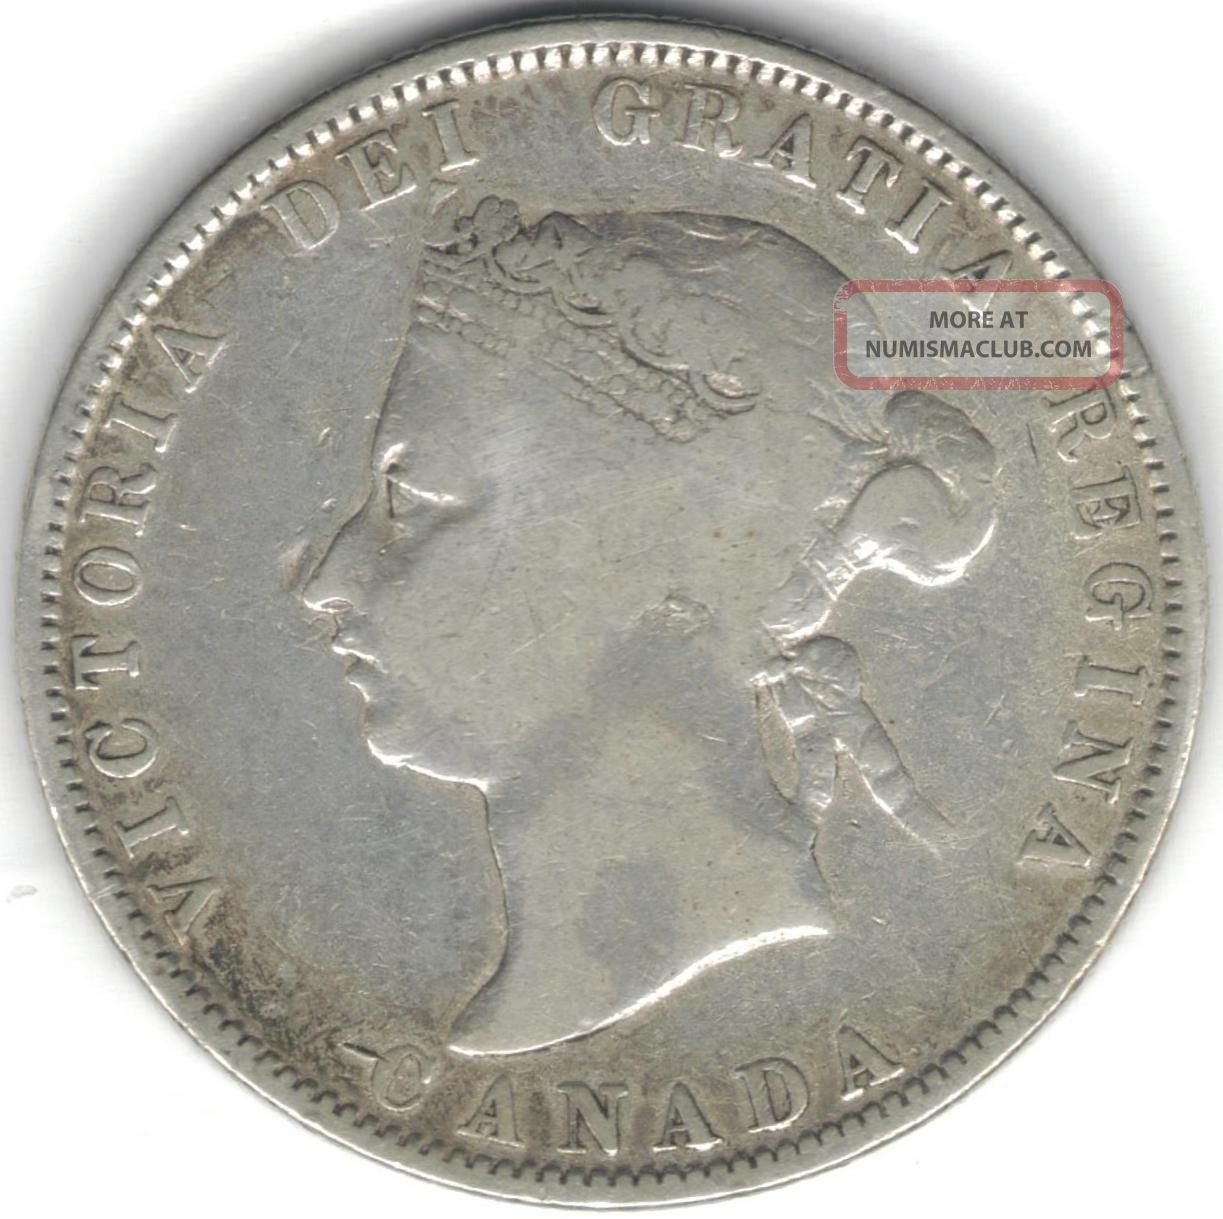 Tmm 1871h Silver Victoria Canada 25c Vg Coins: Canada photo